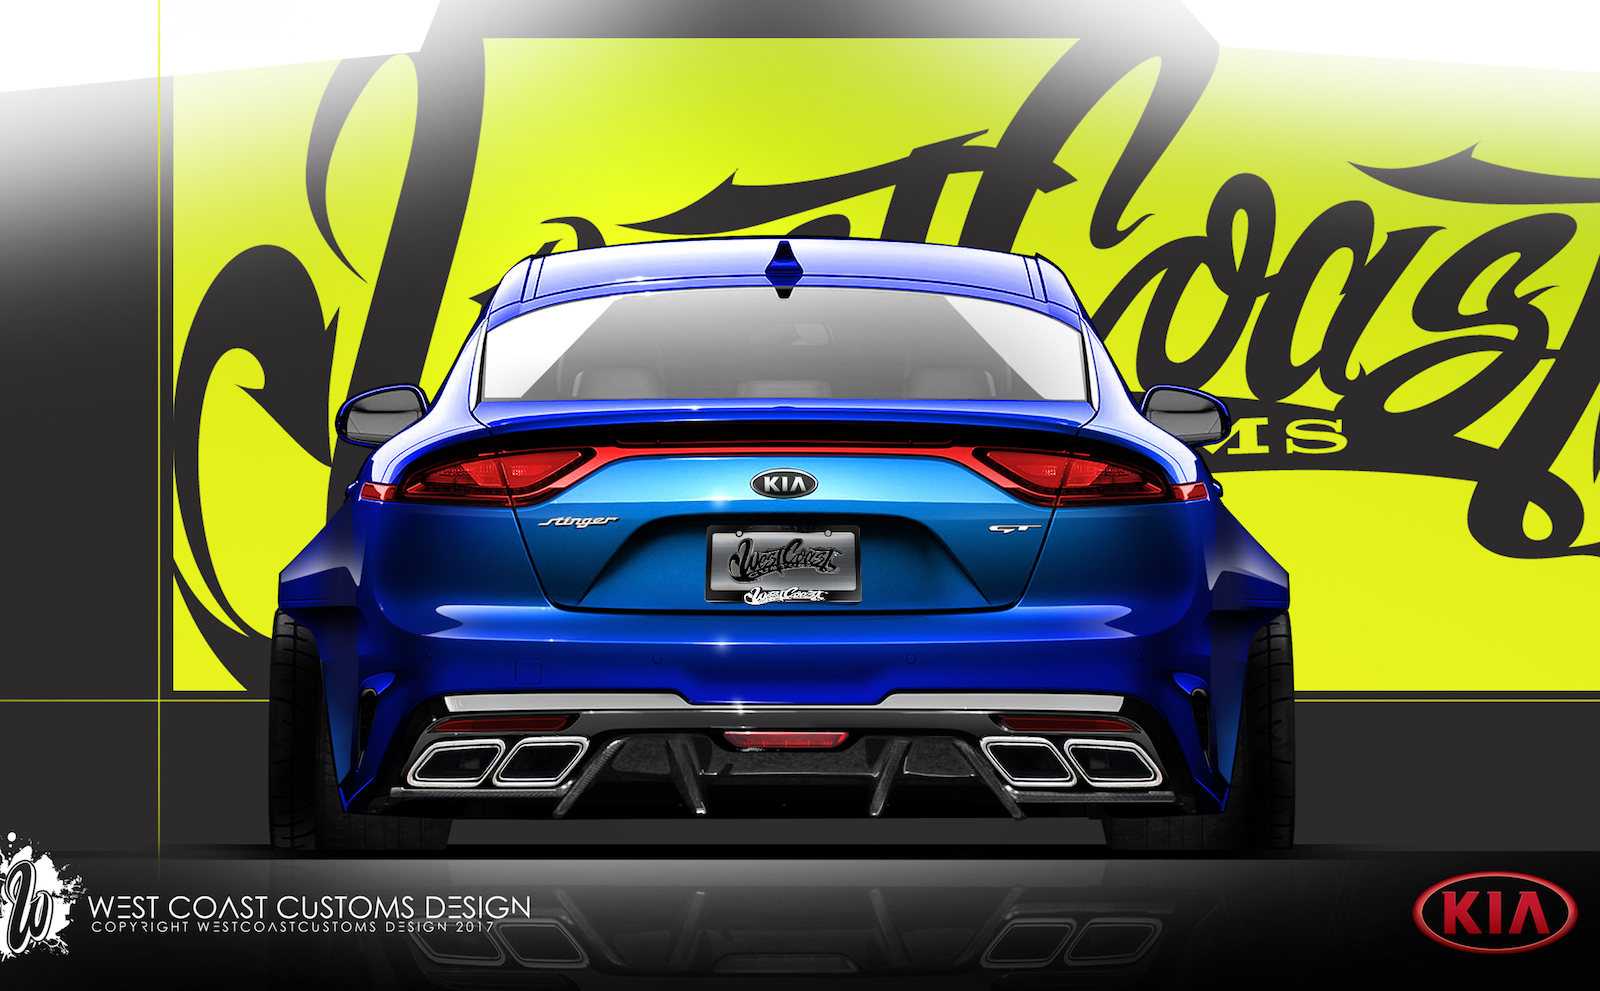 sema bound kia stinger project shows off tuning potential. Black Bedroom Furniture Sets. Home Design Ideas